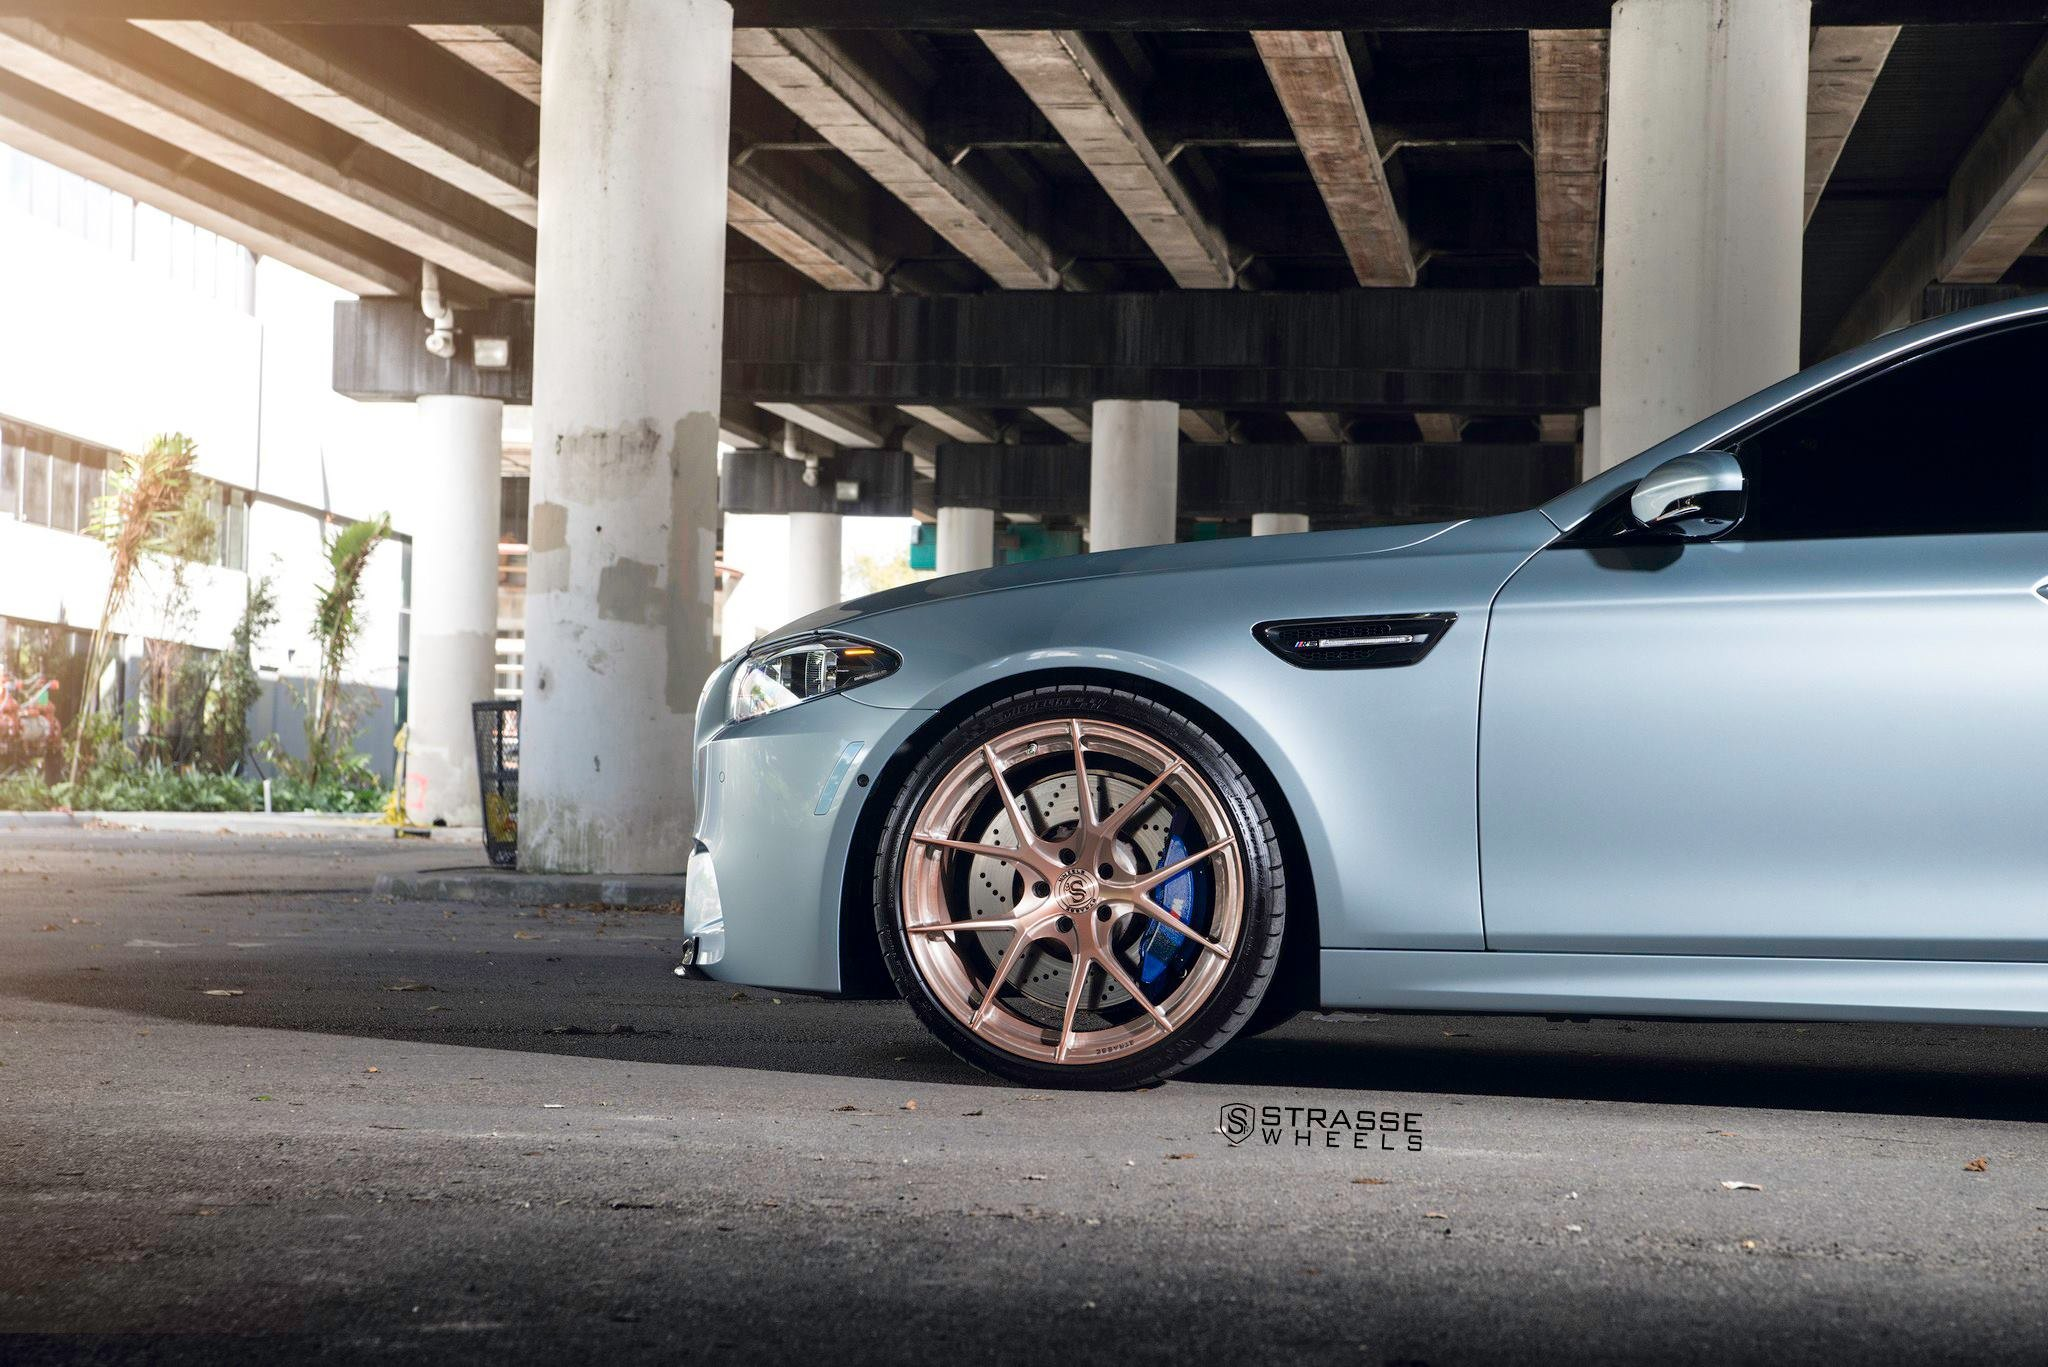 Rose Gold Standard Srasse Wheels Beautify Gray Bmw 5 Series Carid